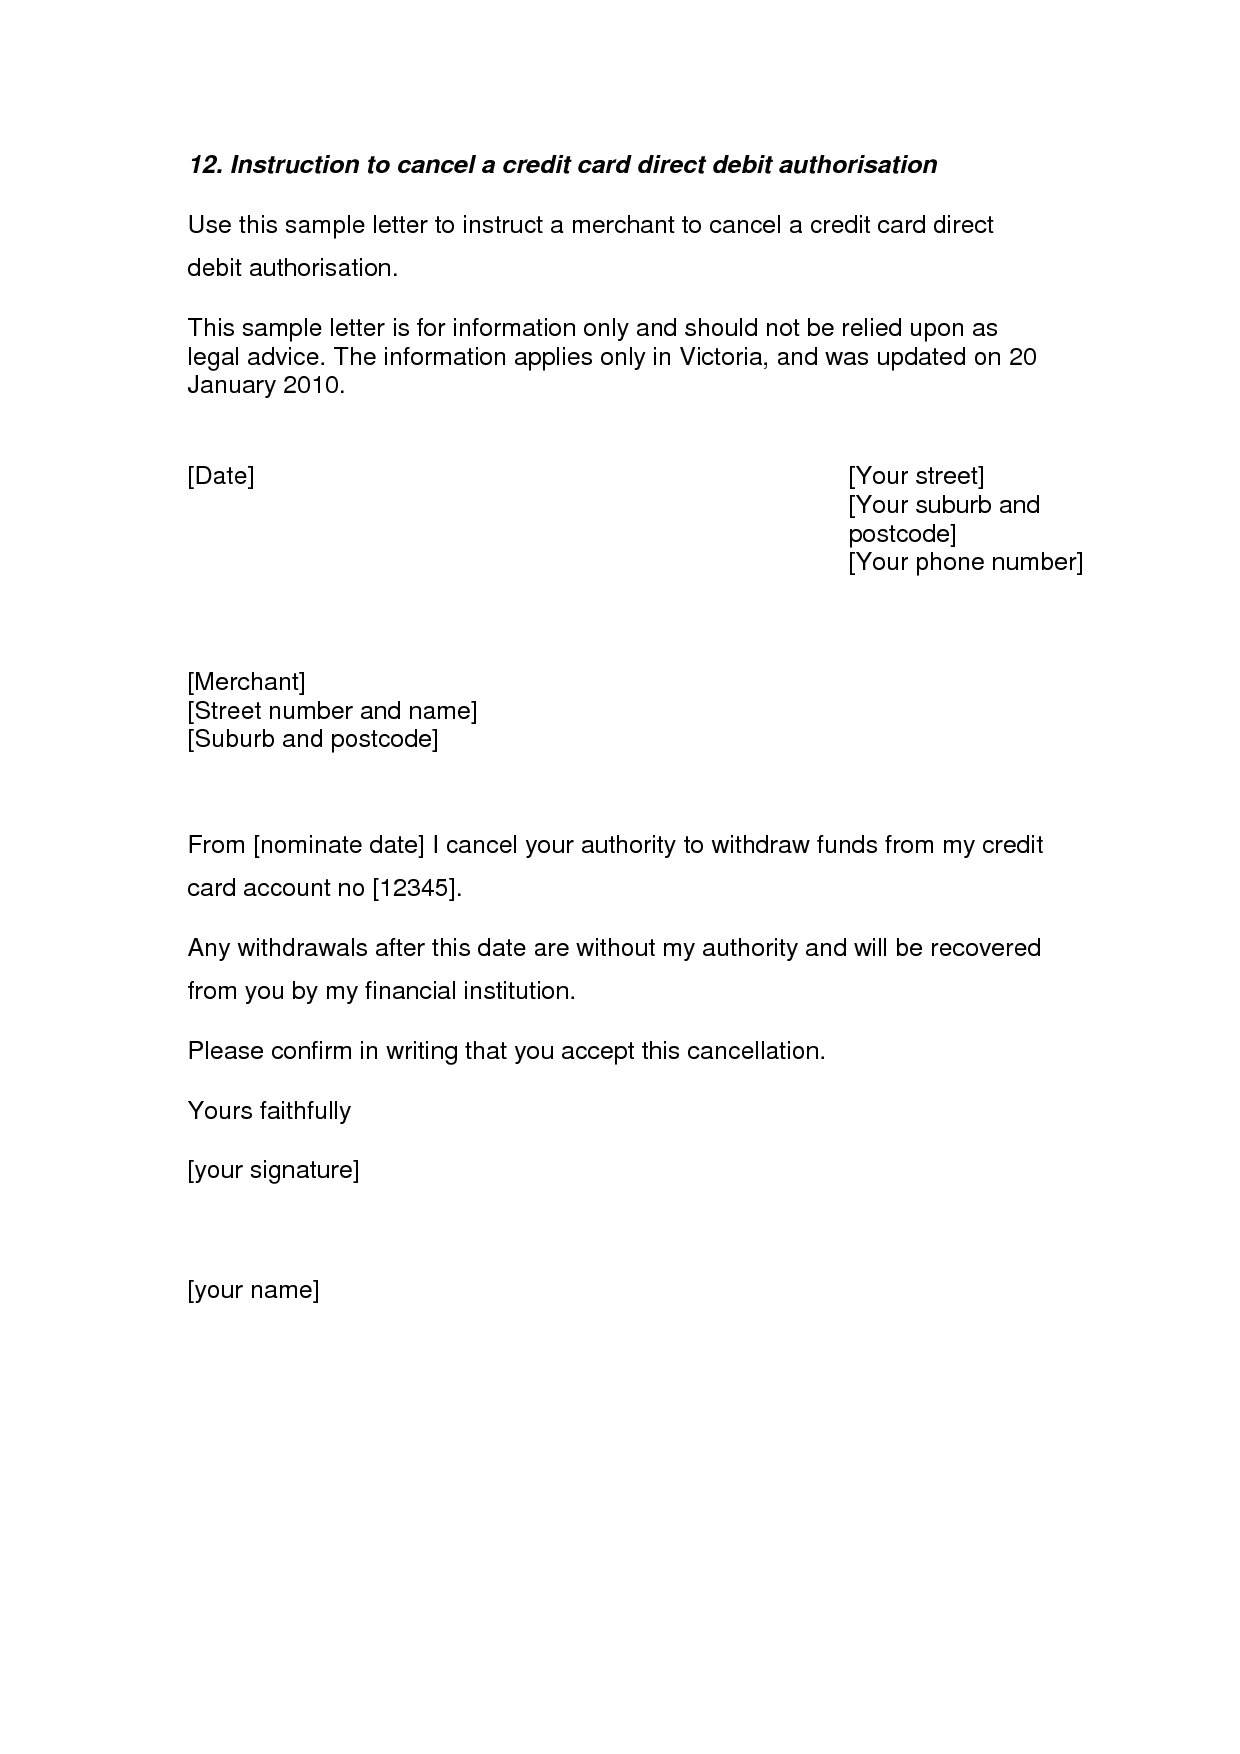 Contract Cancellation Letter Template Free - Credit Card Cancellation Letter A Credit Card Cancellation Letter